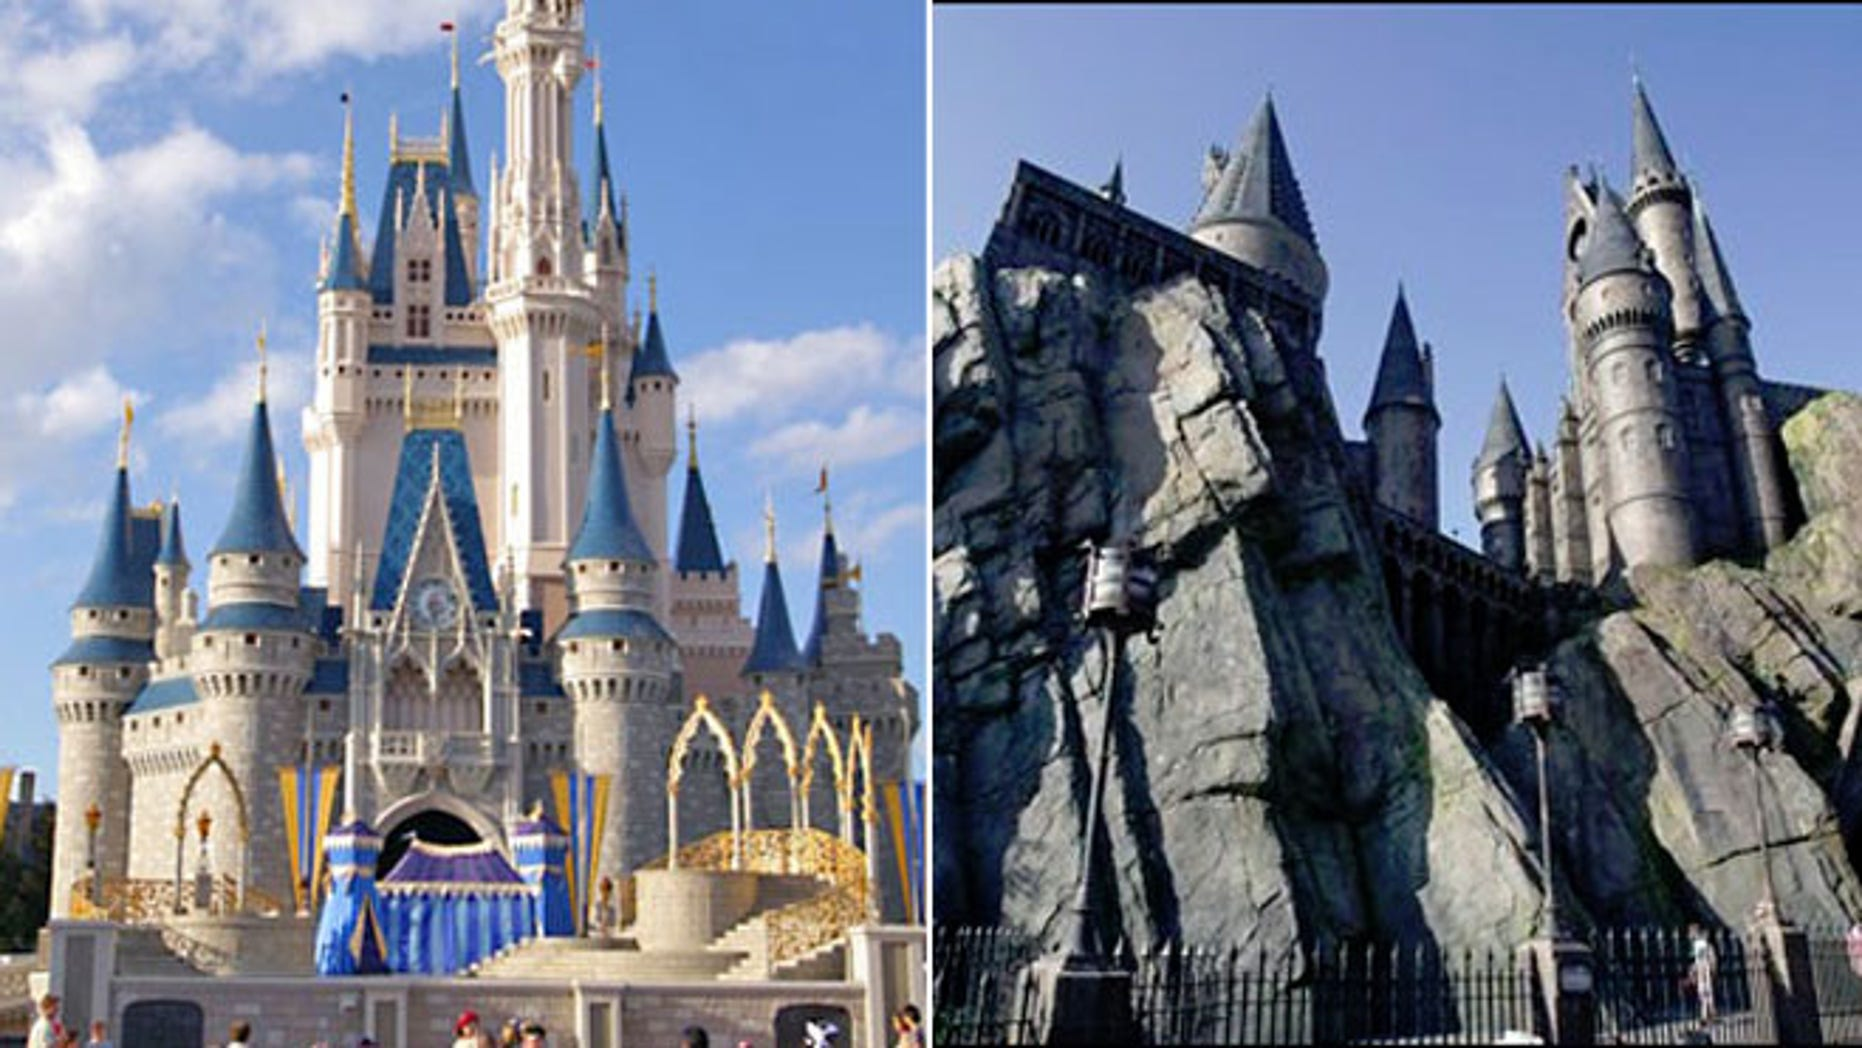 Cinderella Castle at Walt Disney World and Hogwarts Castle at The Wizarding World of Harry Potter at Universal Orlando theme park